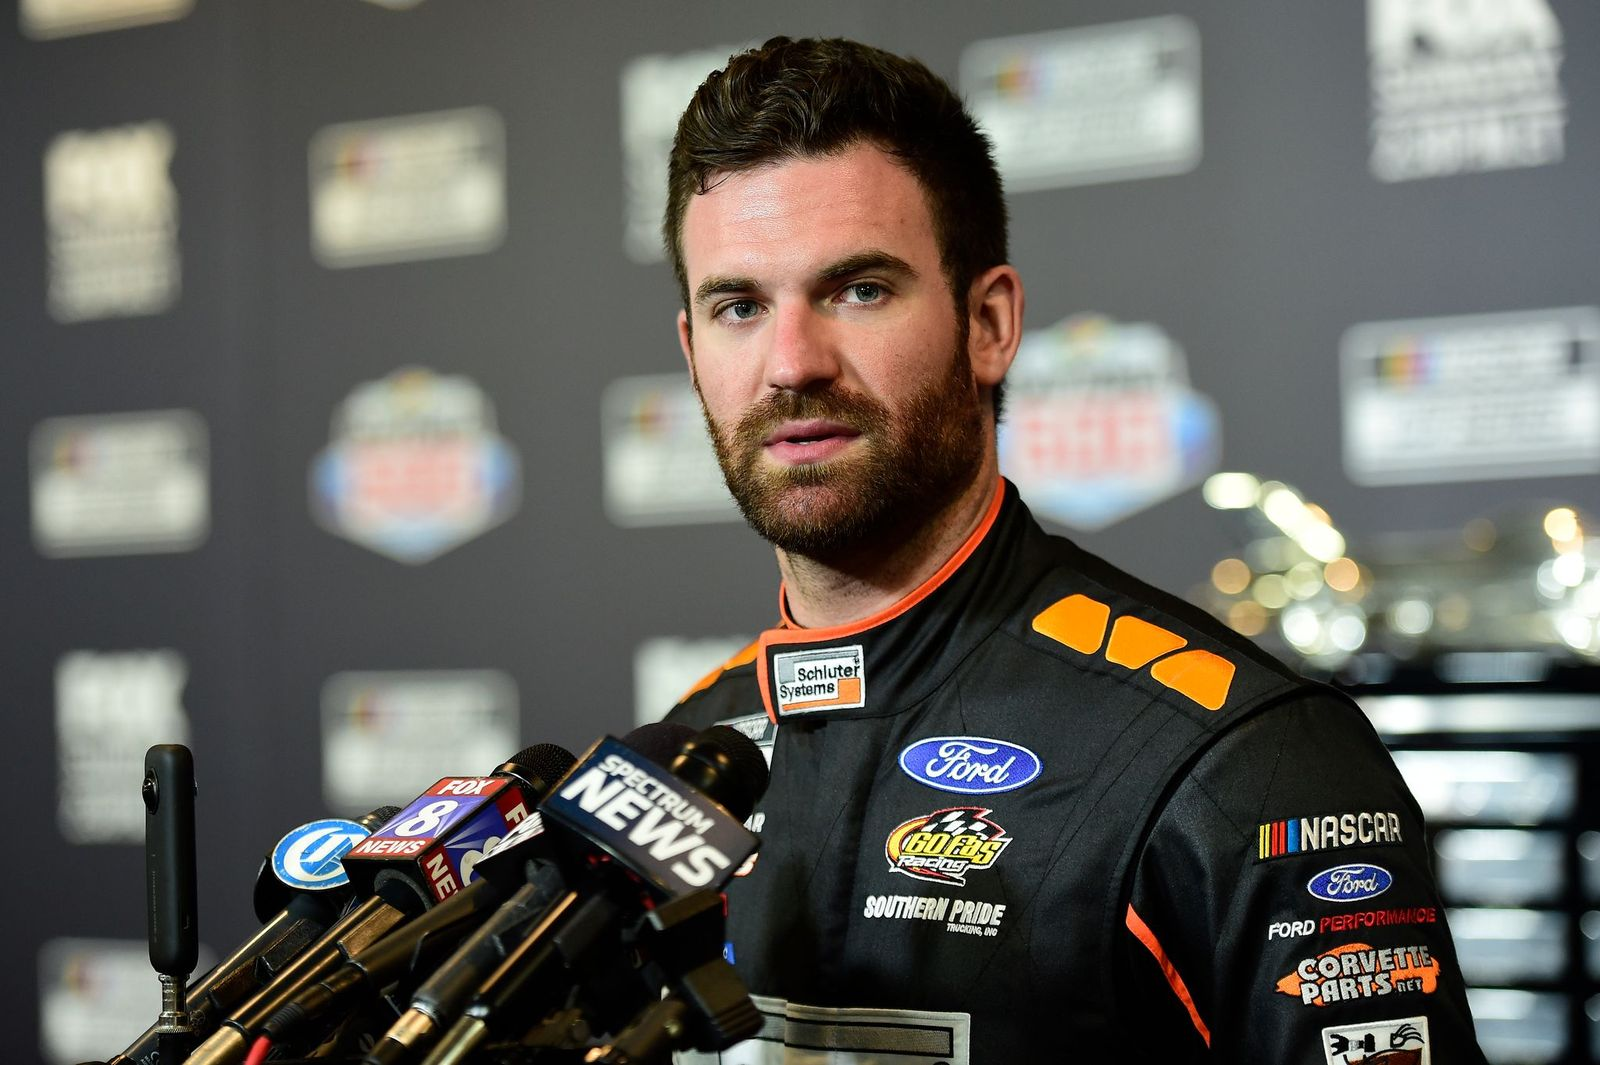 Corey LaJoie at the NASCAR Cup Series 62nd Annual Daytona 500 Media Day on February 12, 2020, in Daytona Beach, Florida | Photo: Jared C. Tilton/Getty Images